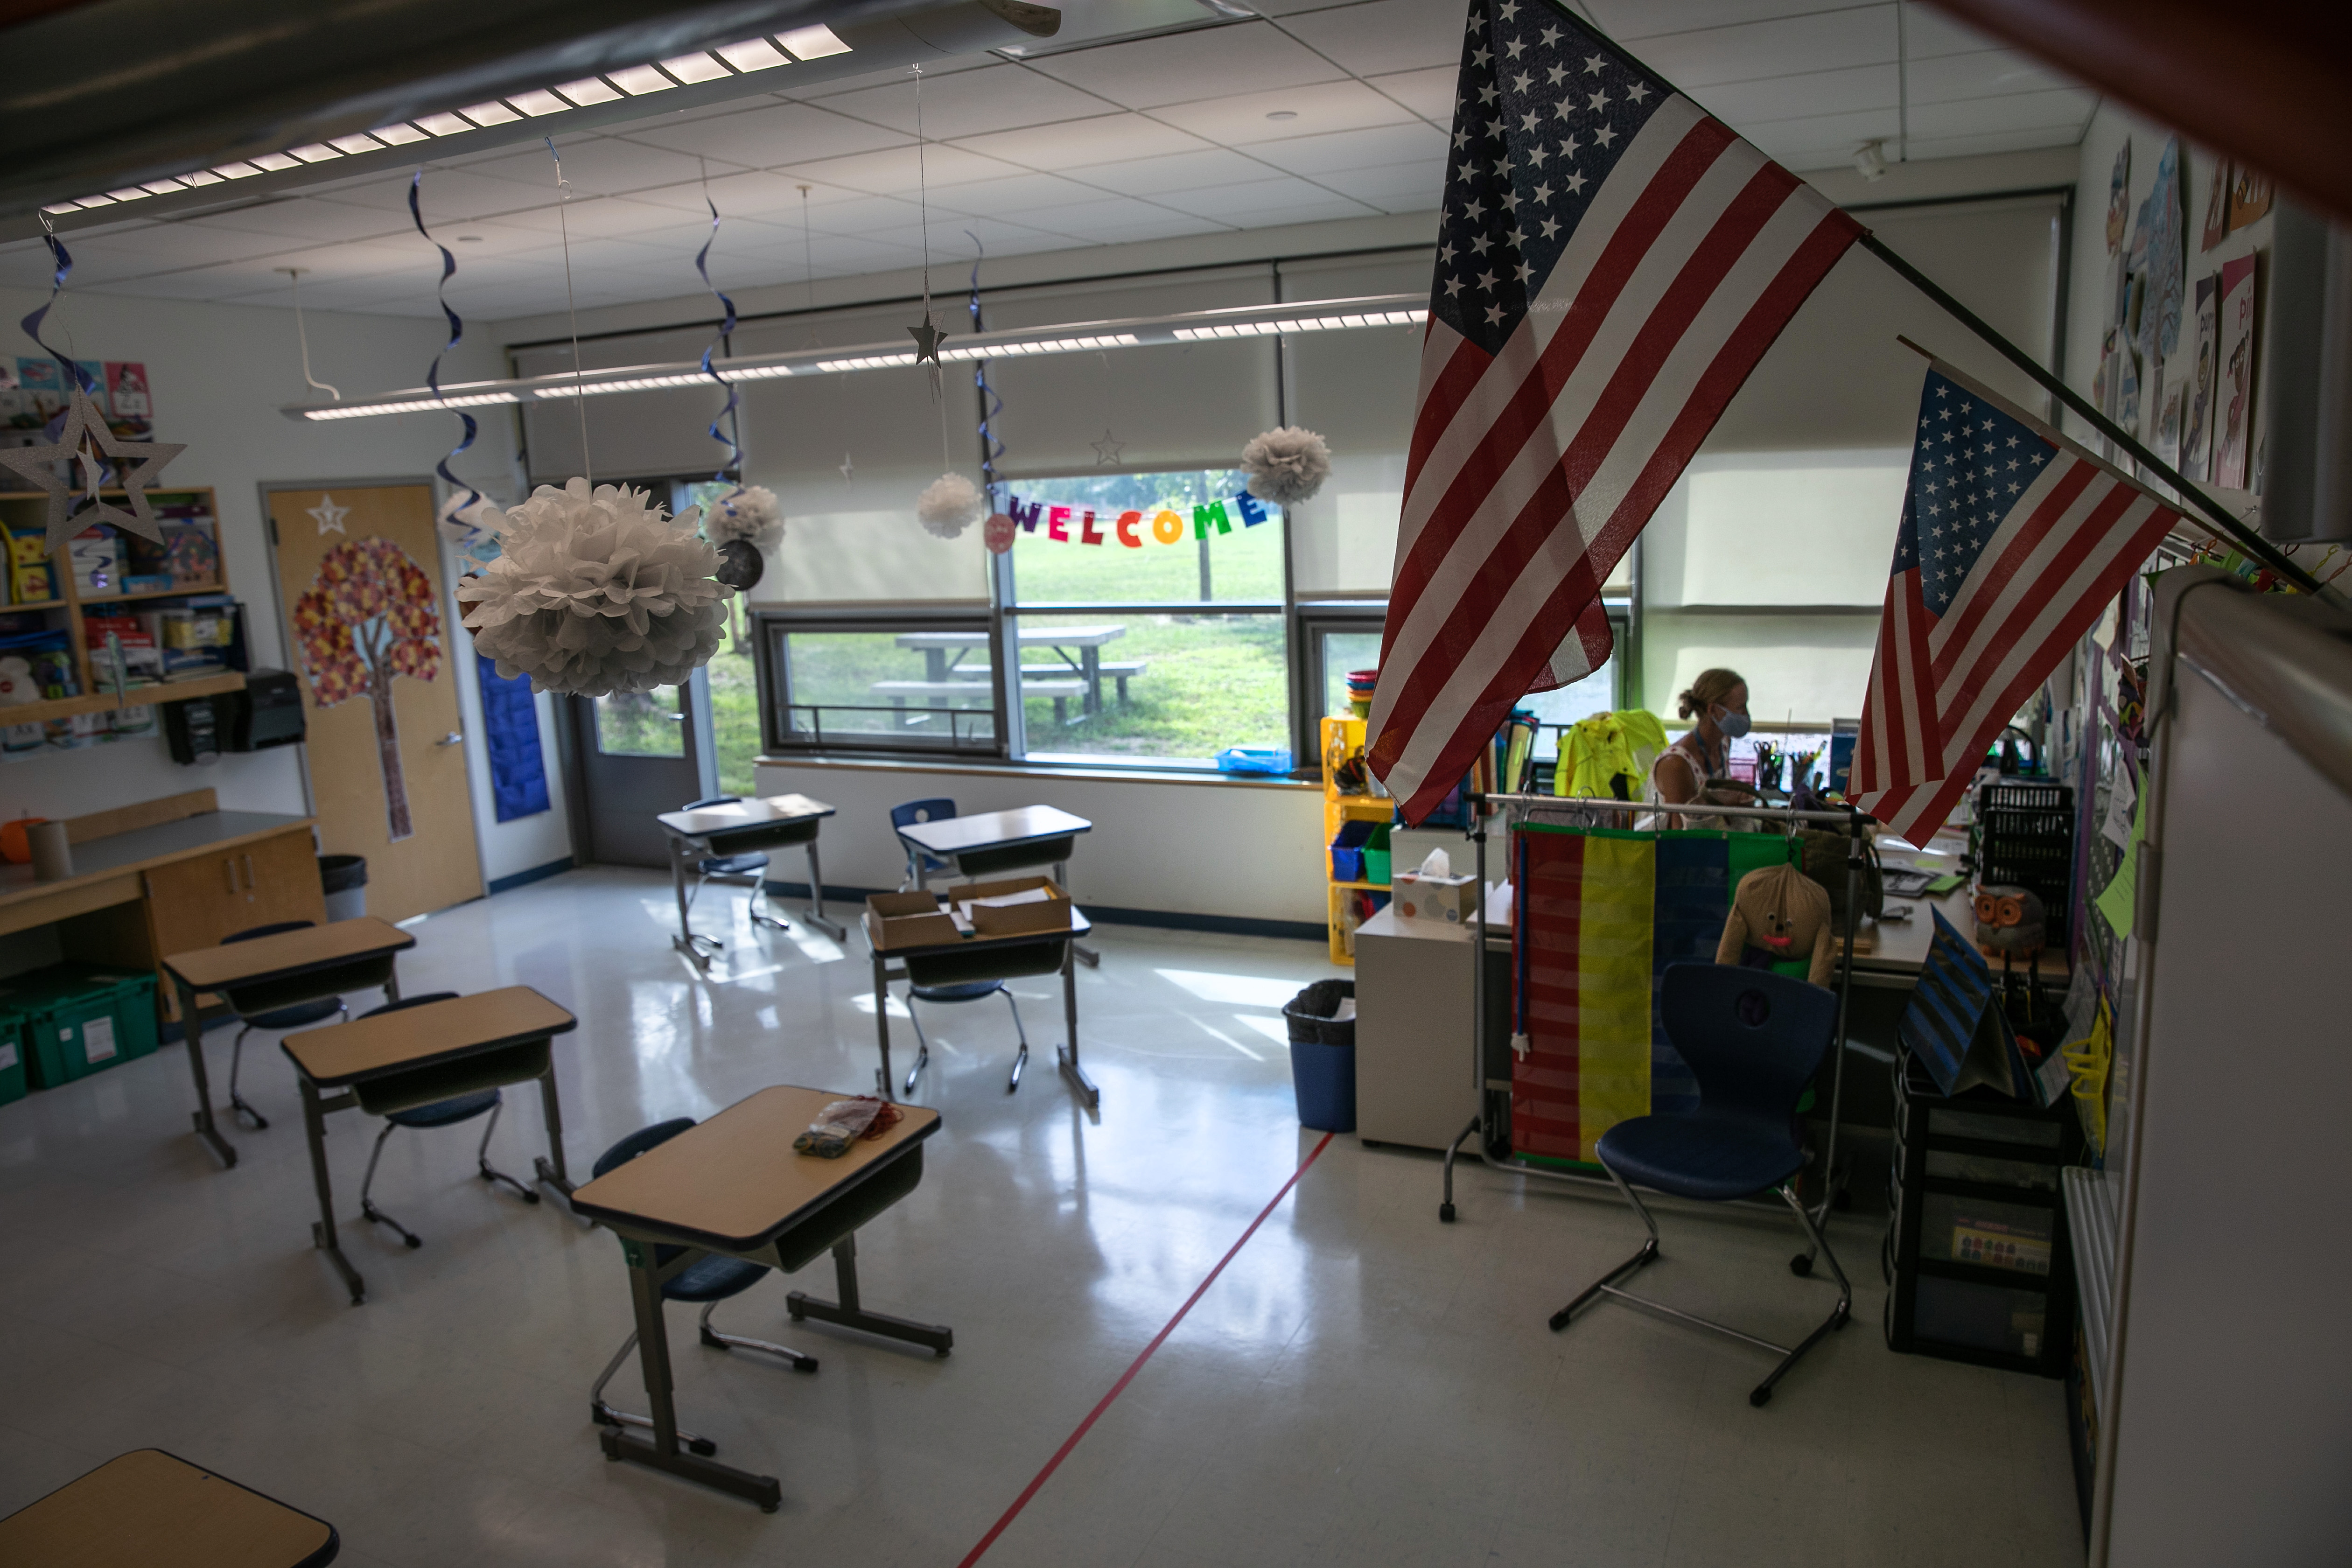 Connecticut School District Prepares Classrooms For Hybrid Learning